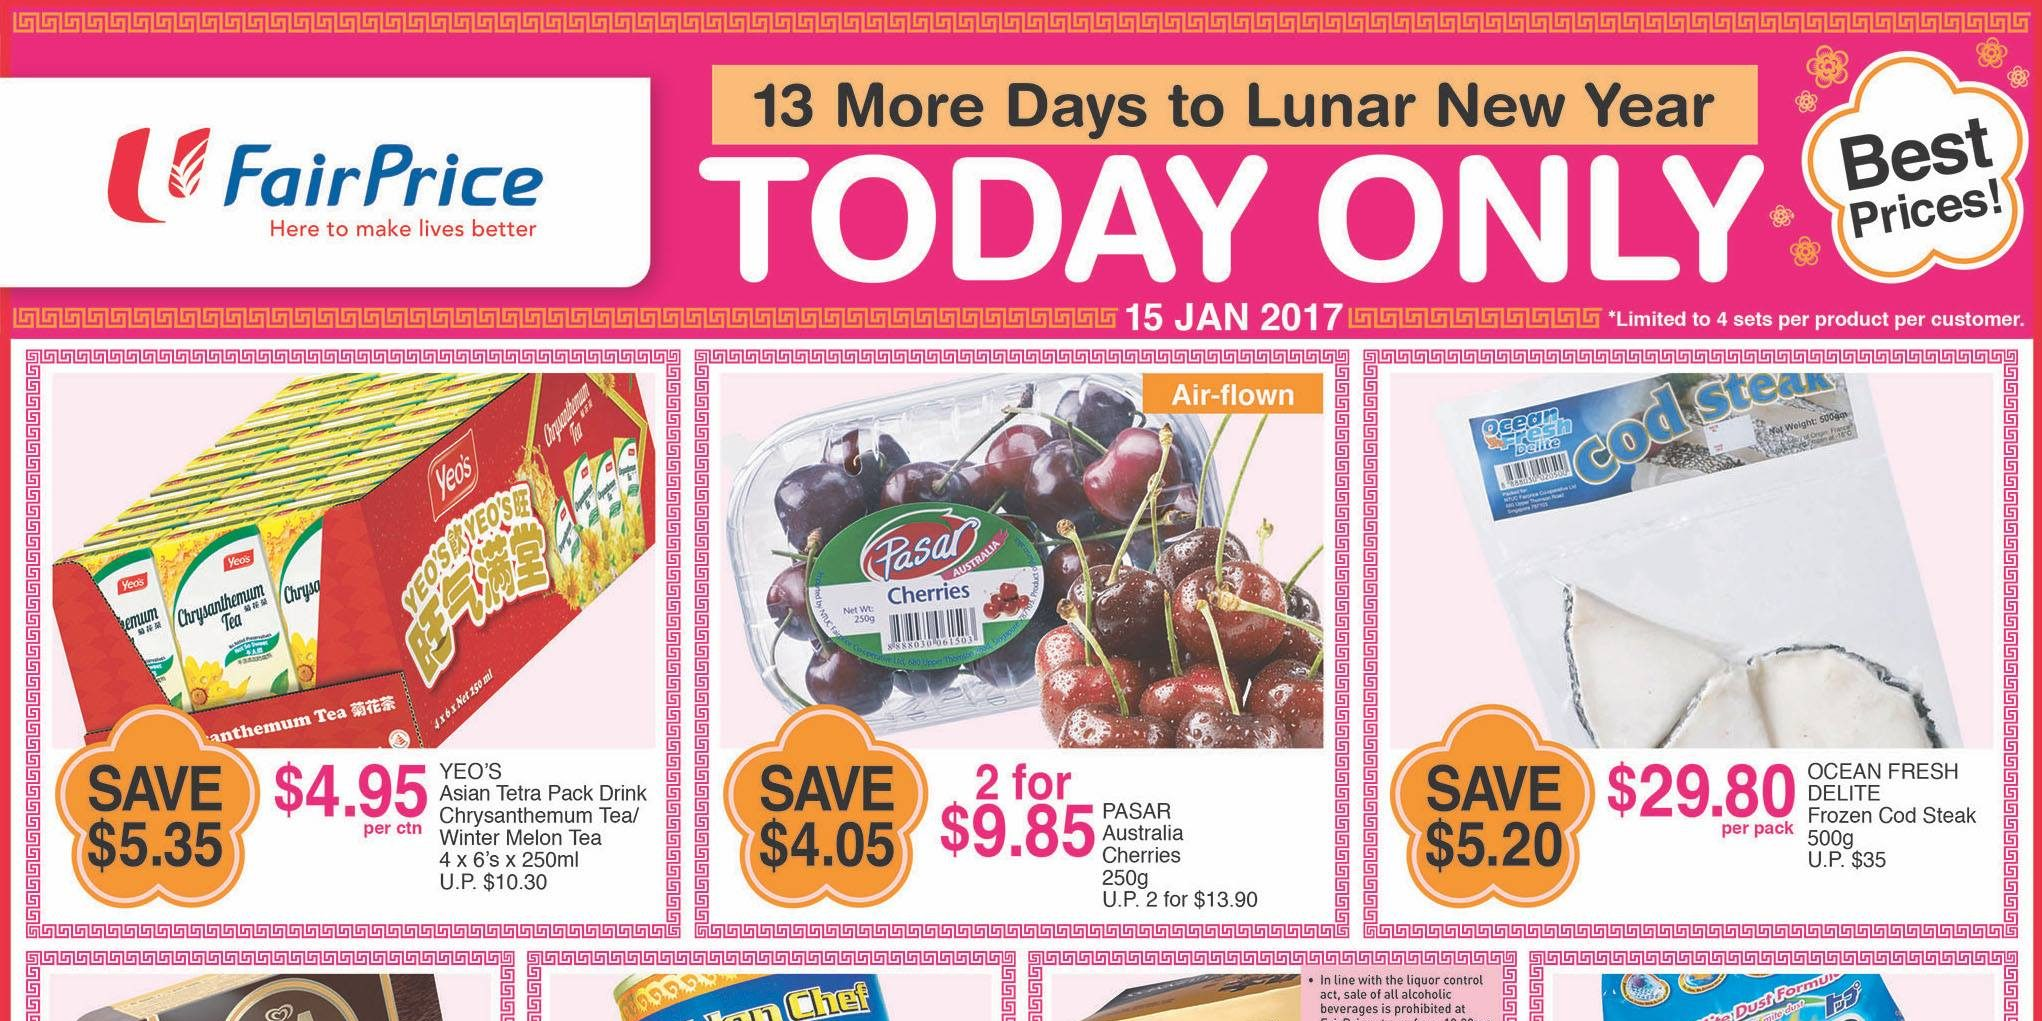 NTUC FairPrice Singapore 13 More Days to Lunar New Year Promotion 15 Jan 2017